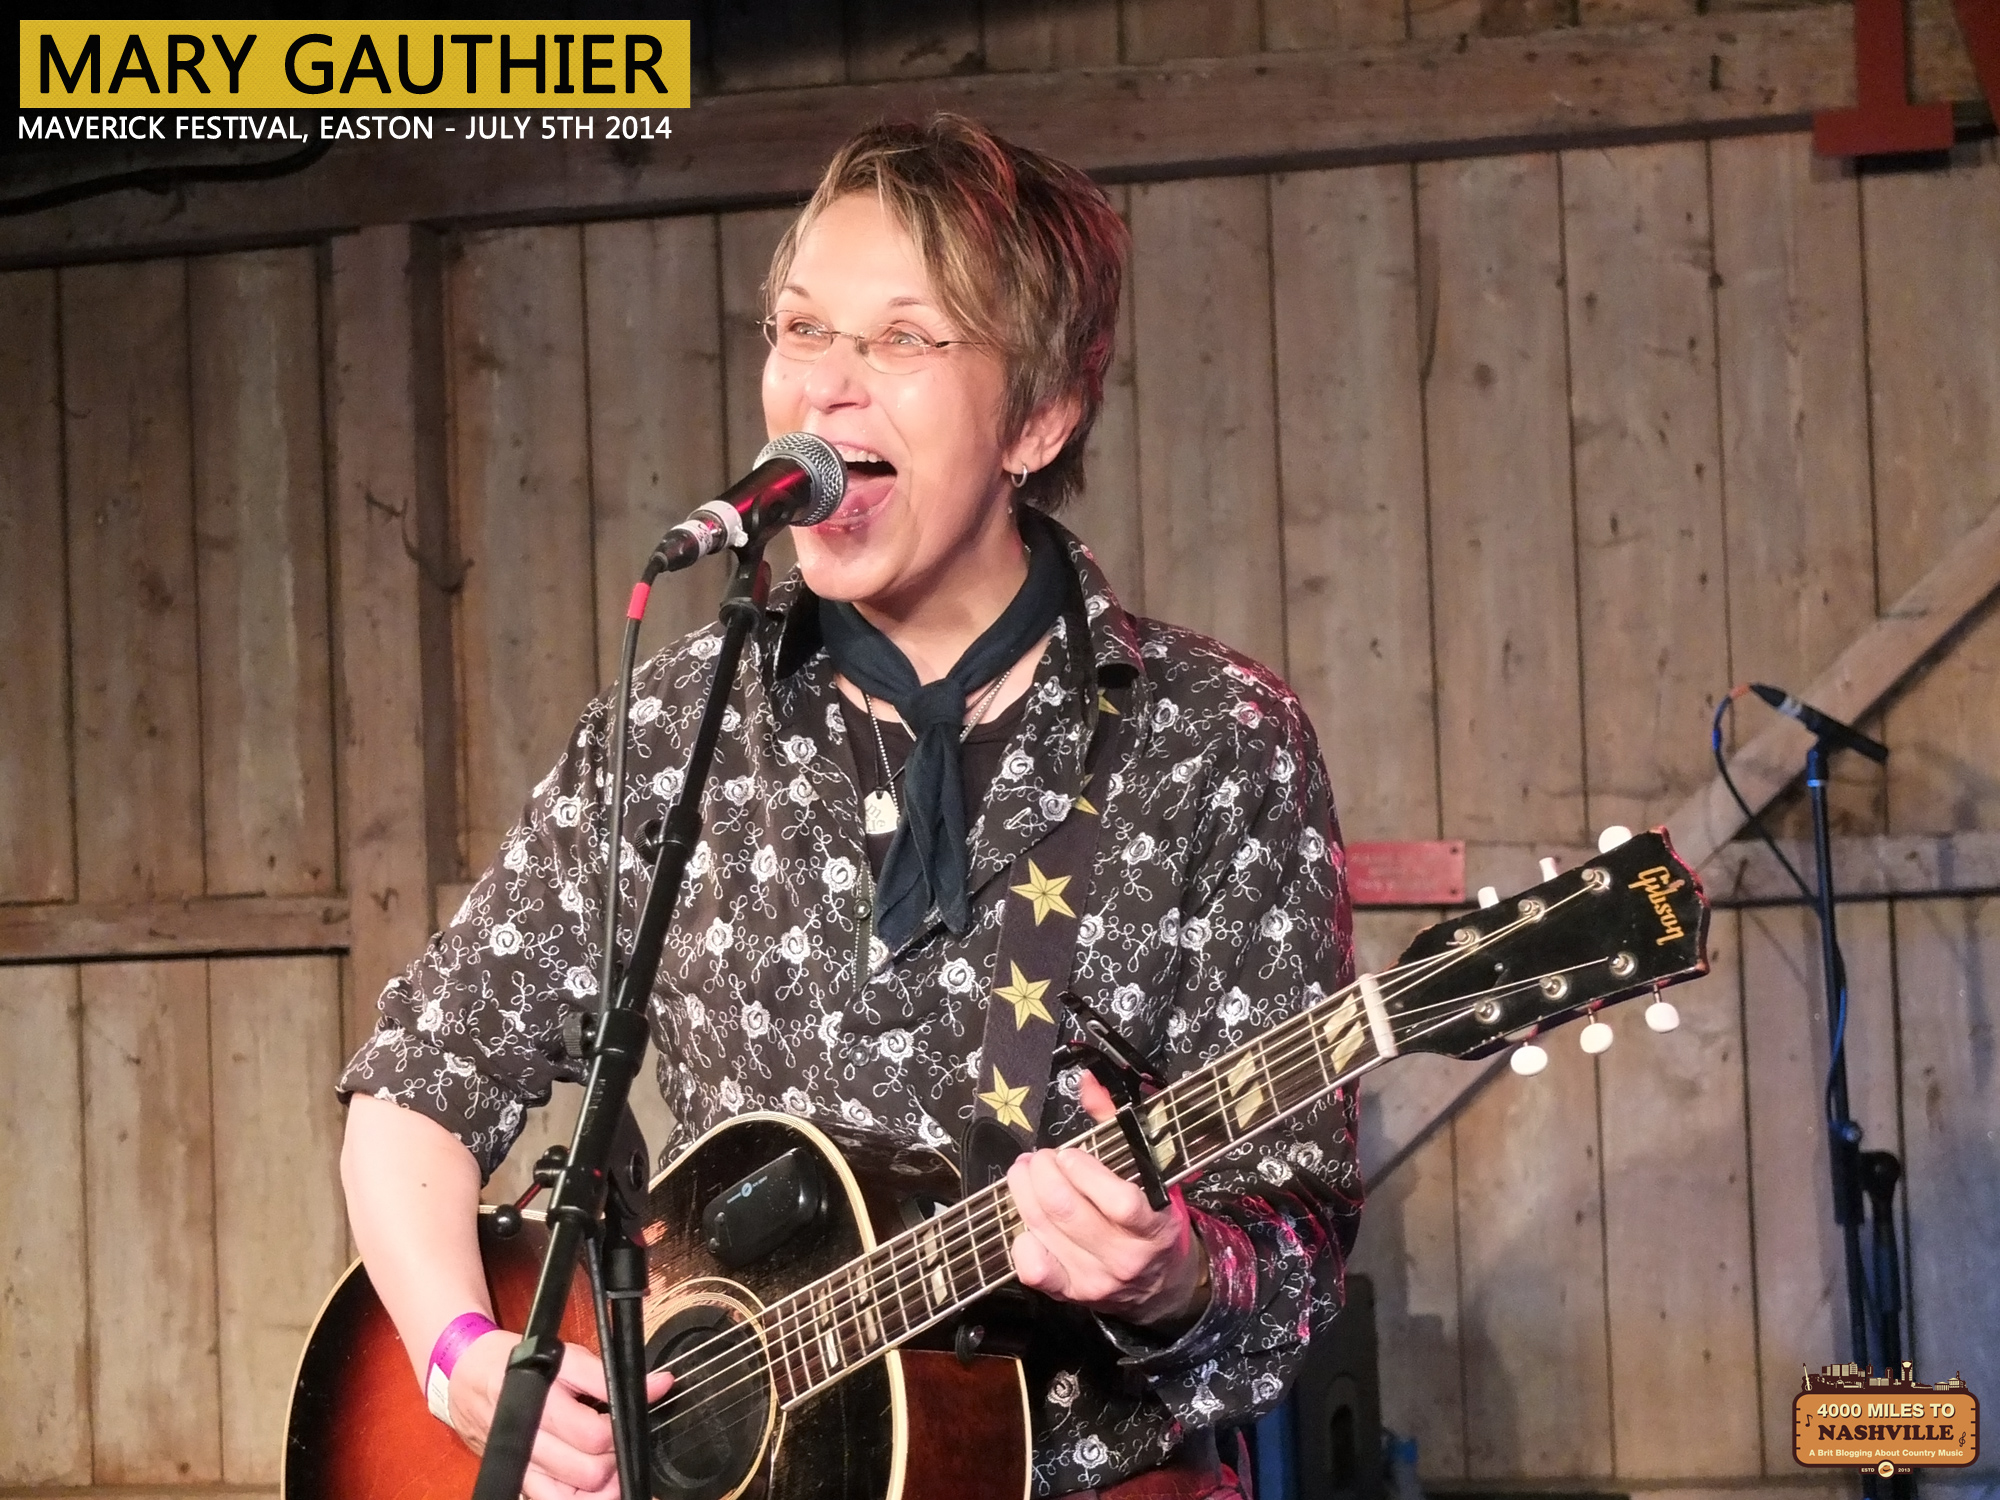 Reviewing Maverick Festival 2014: Larkin Poe, Mary Gauthier, Holly Williams And More